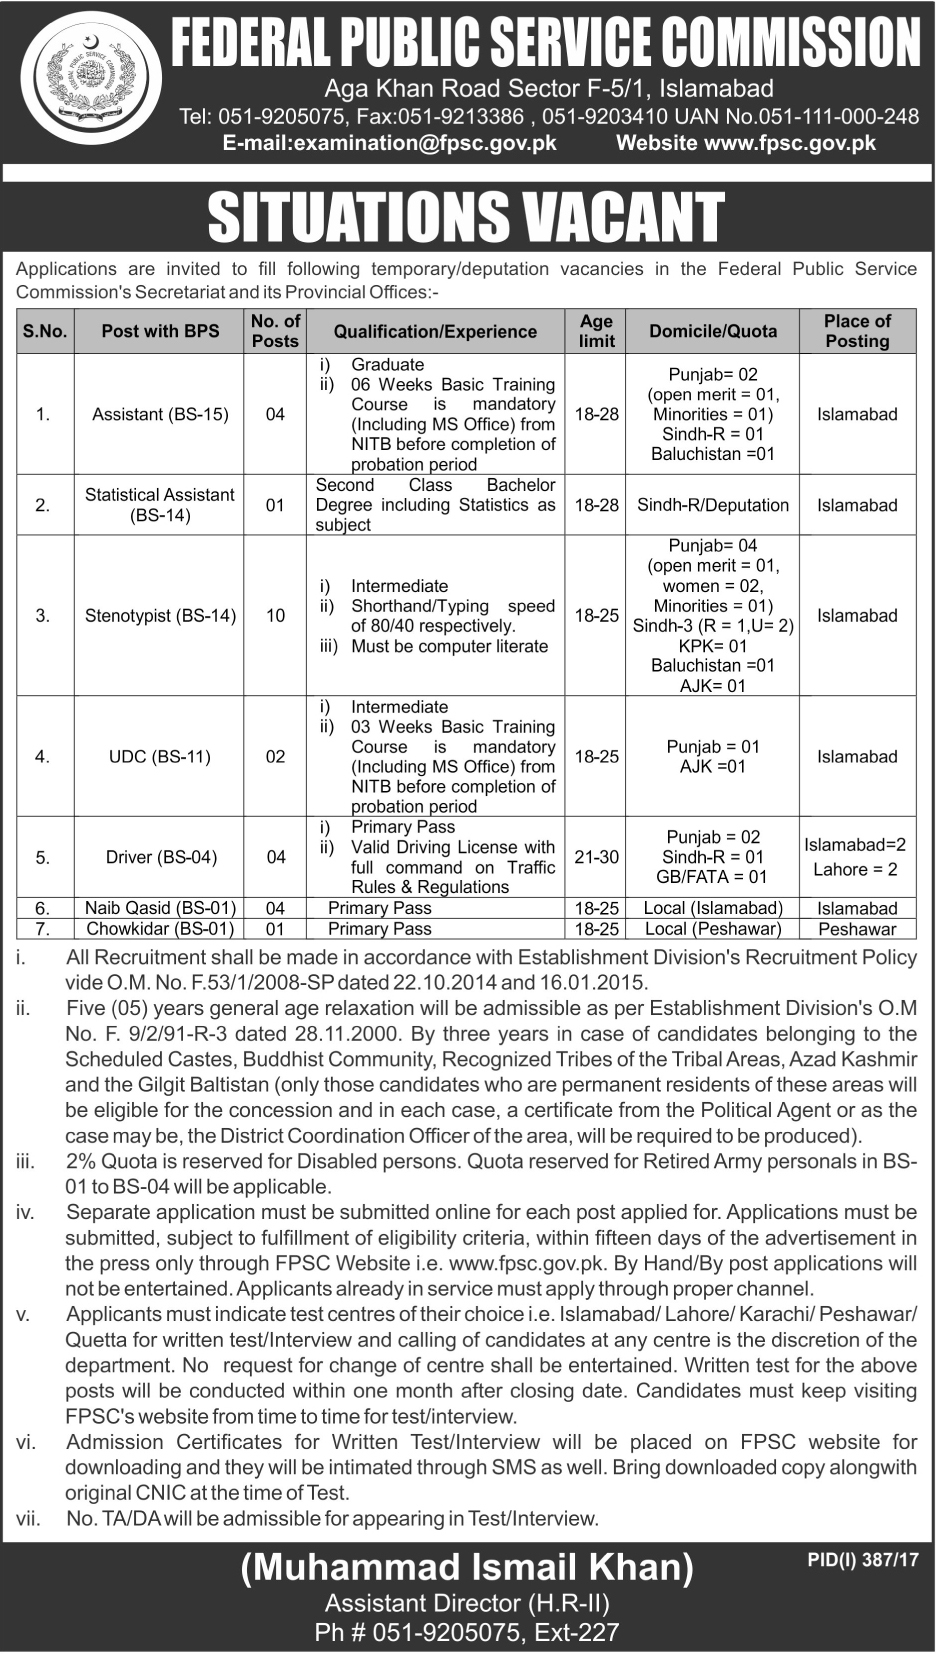 Federal-Public-Service-Commission-Jobs Job Application Form Public Service Commission on washington state, members sindh, logo wi, current chairman federal, west virginia, hd logo punjab, lecturer pak study past paper kpk, advertisement for administrative secretary,